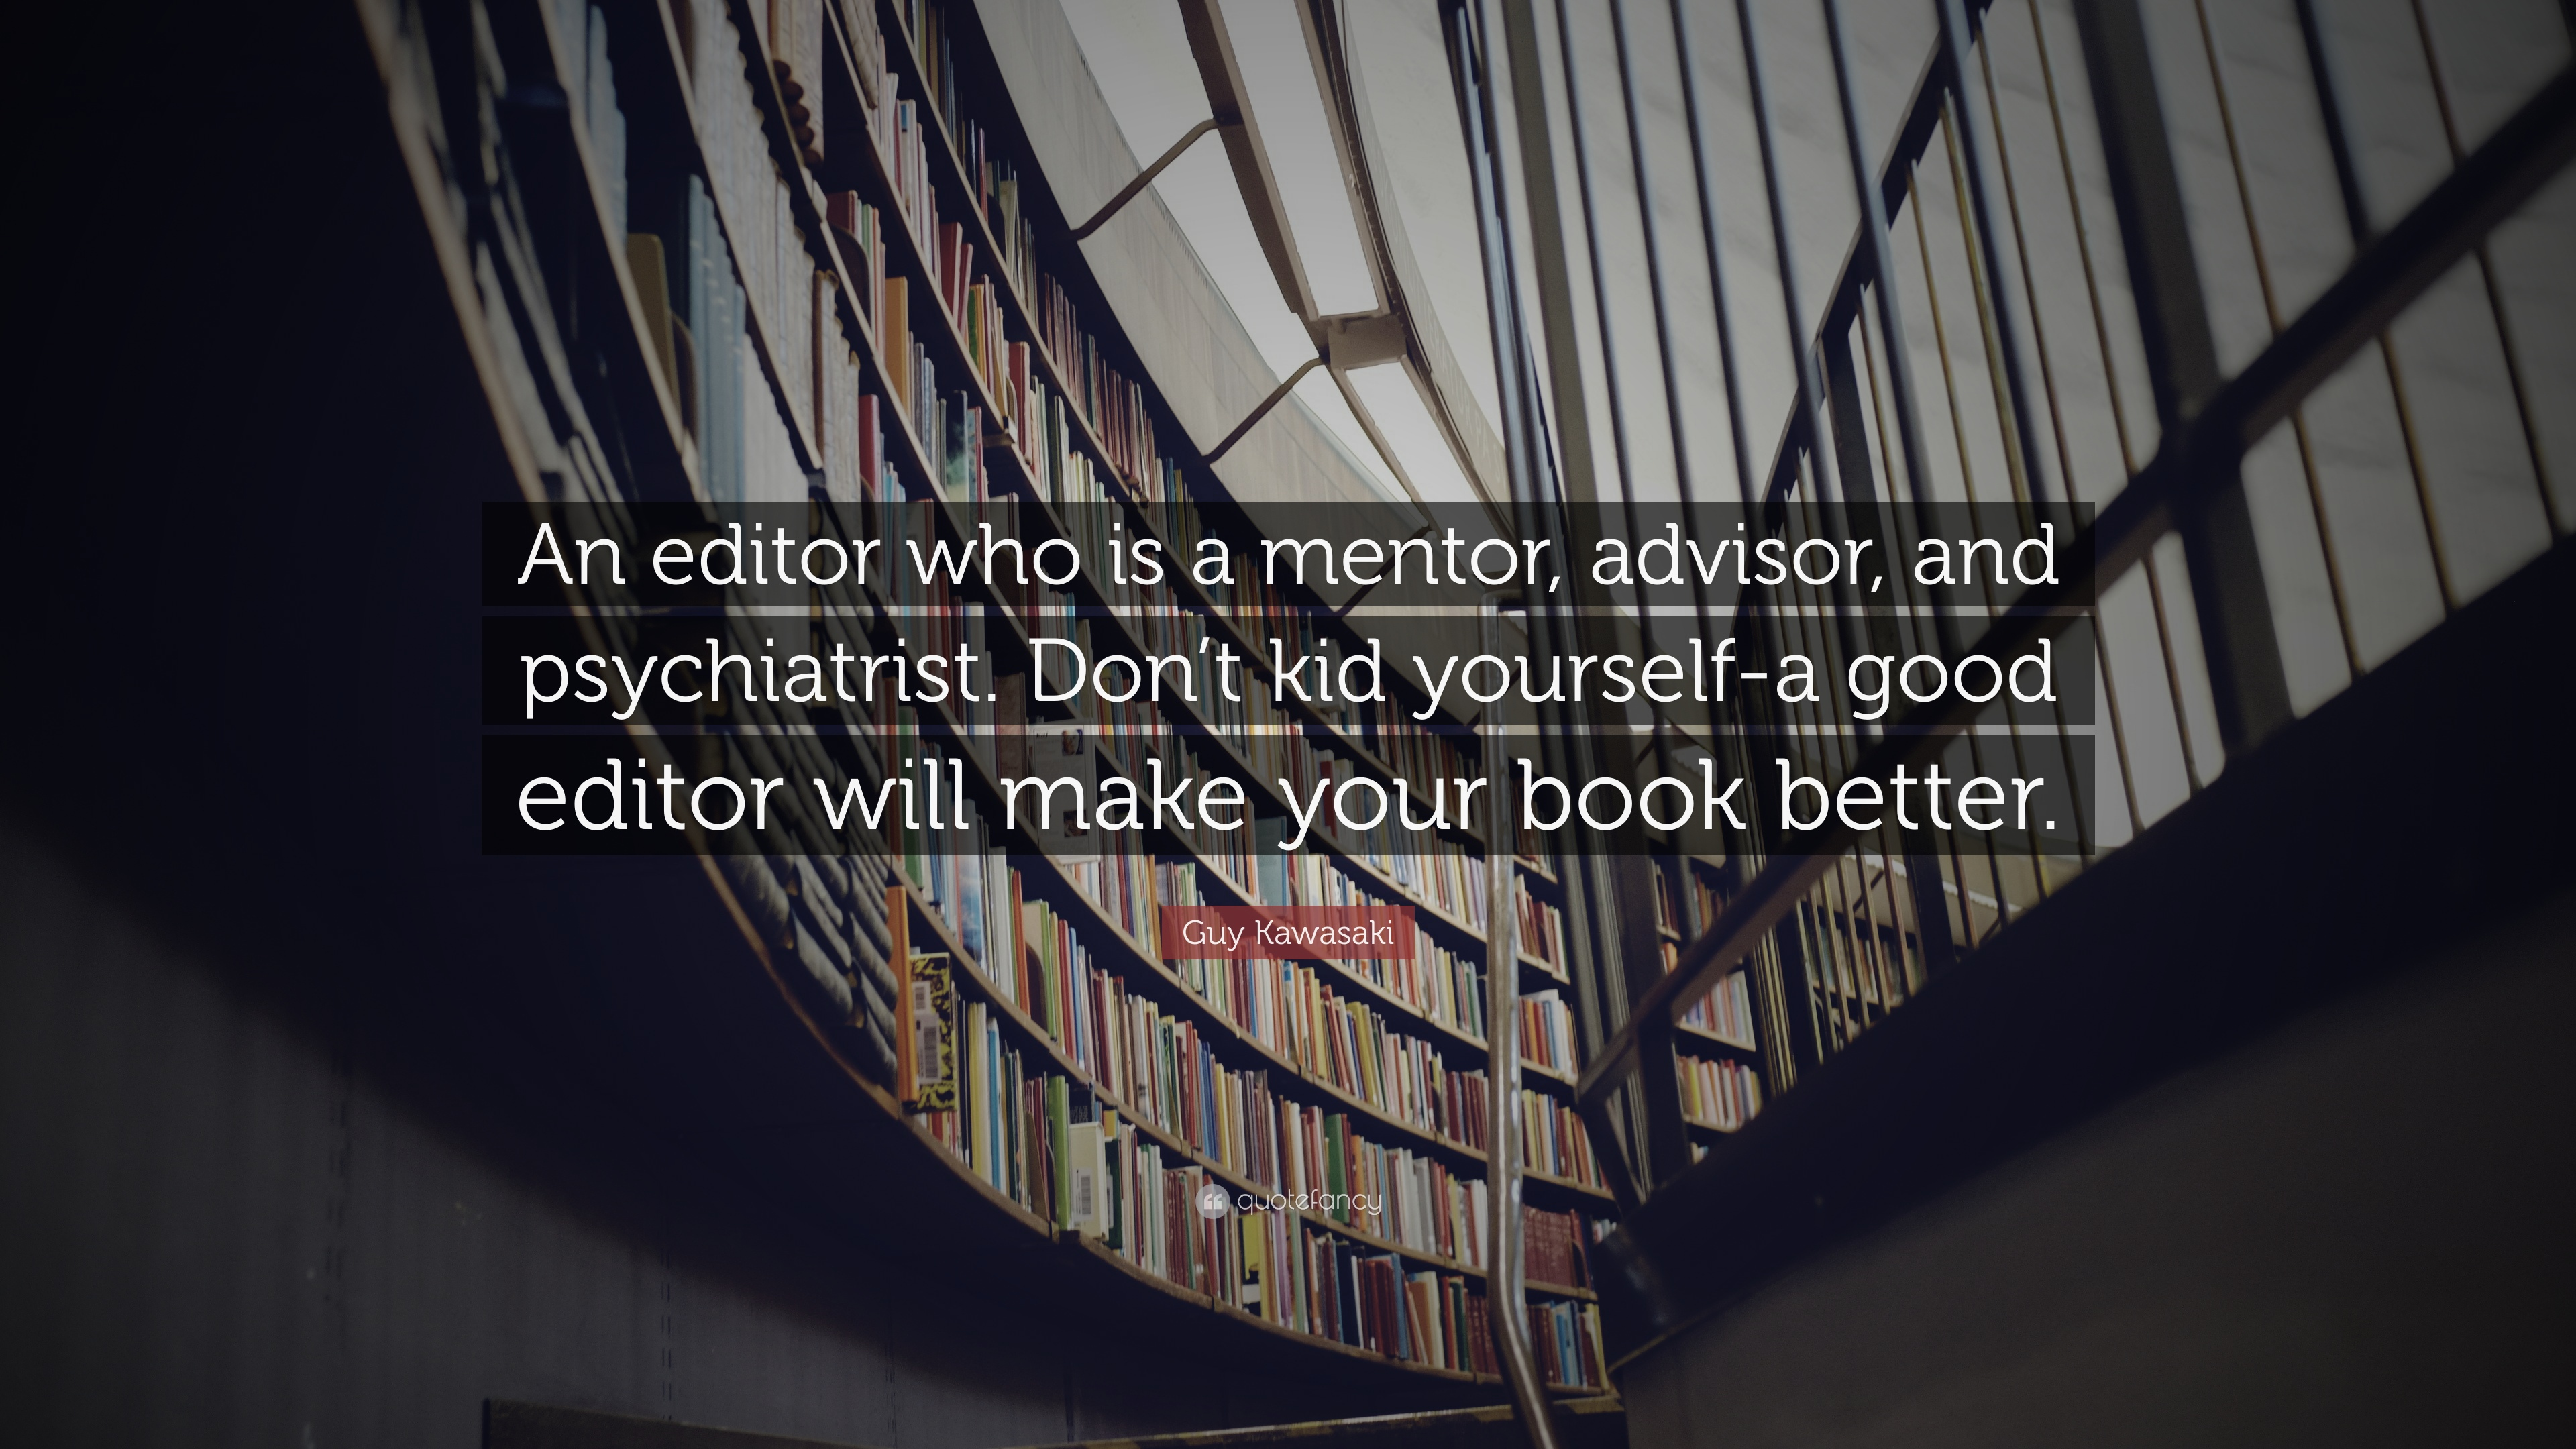 Guy kawasaki quote an editor who is a mentor advisor and psychiatrist